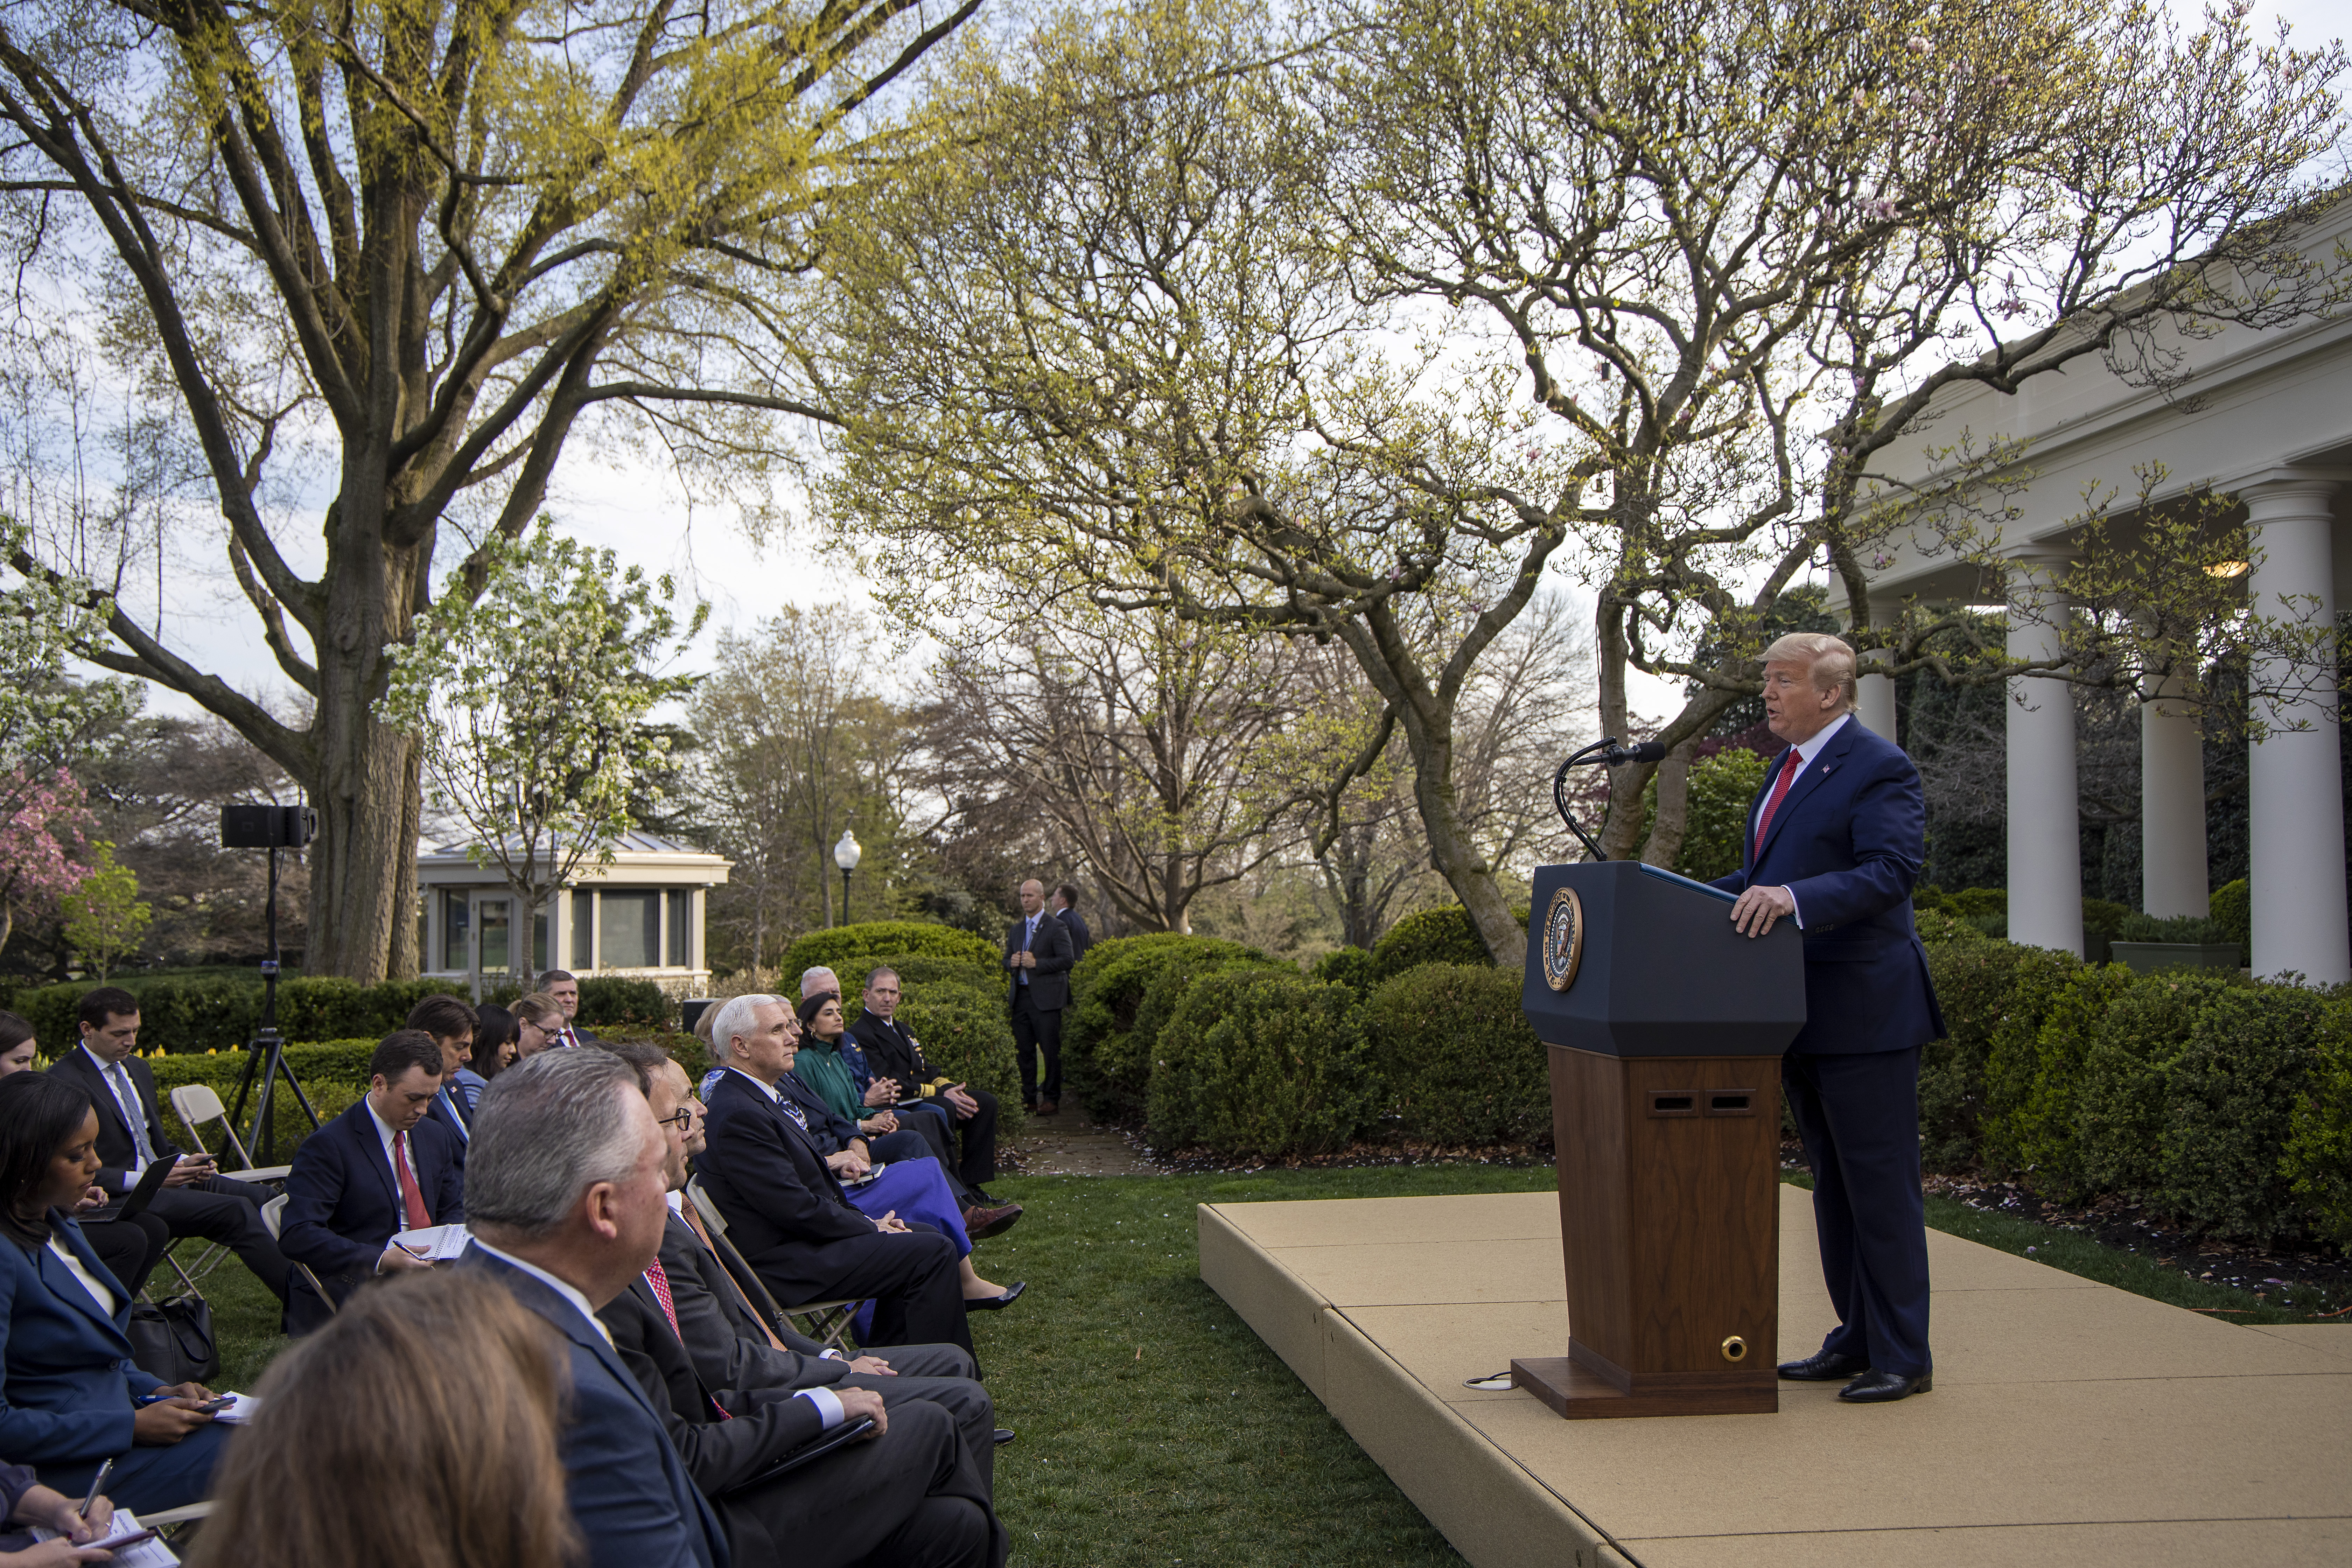 WASHINGTON, DC - MARCH 29: U.S. President Donald Trump speaks in the Rose Garden for the daily coronavirus briefing at the White House on March 29, 2020 in Washington, DC. The United States is advisingresidents of New York, New Jersey and Connecticutnot to travel domestically after the number of reportedcoronavirus(COVID-19) deaths doubled to over 2,000 nationwidewithin two days. (Photo by Tasos Katopodis/Getty Images)